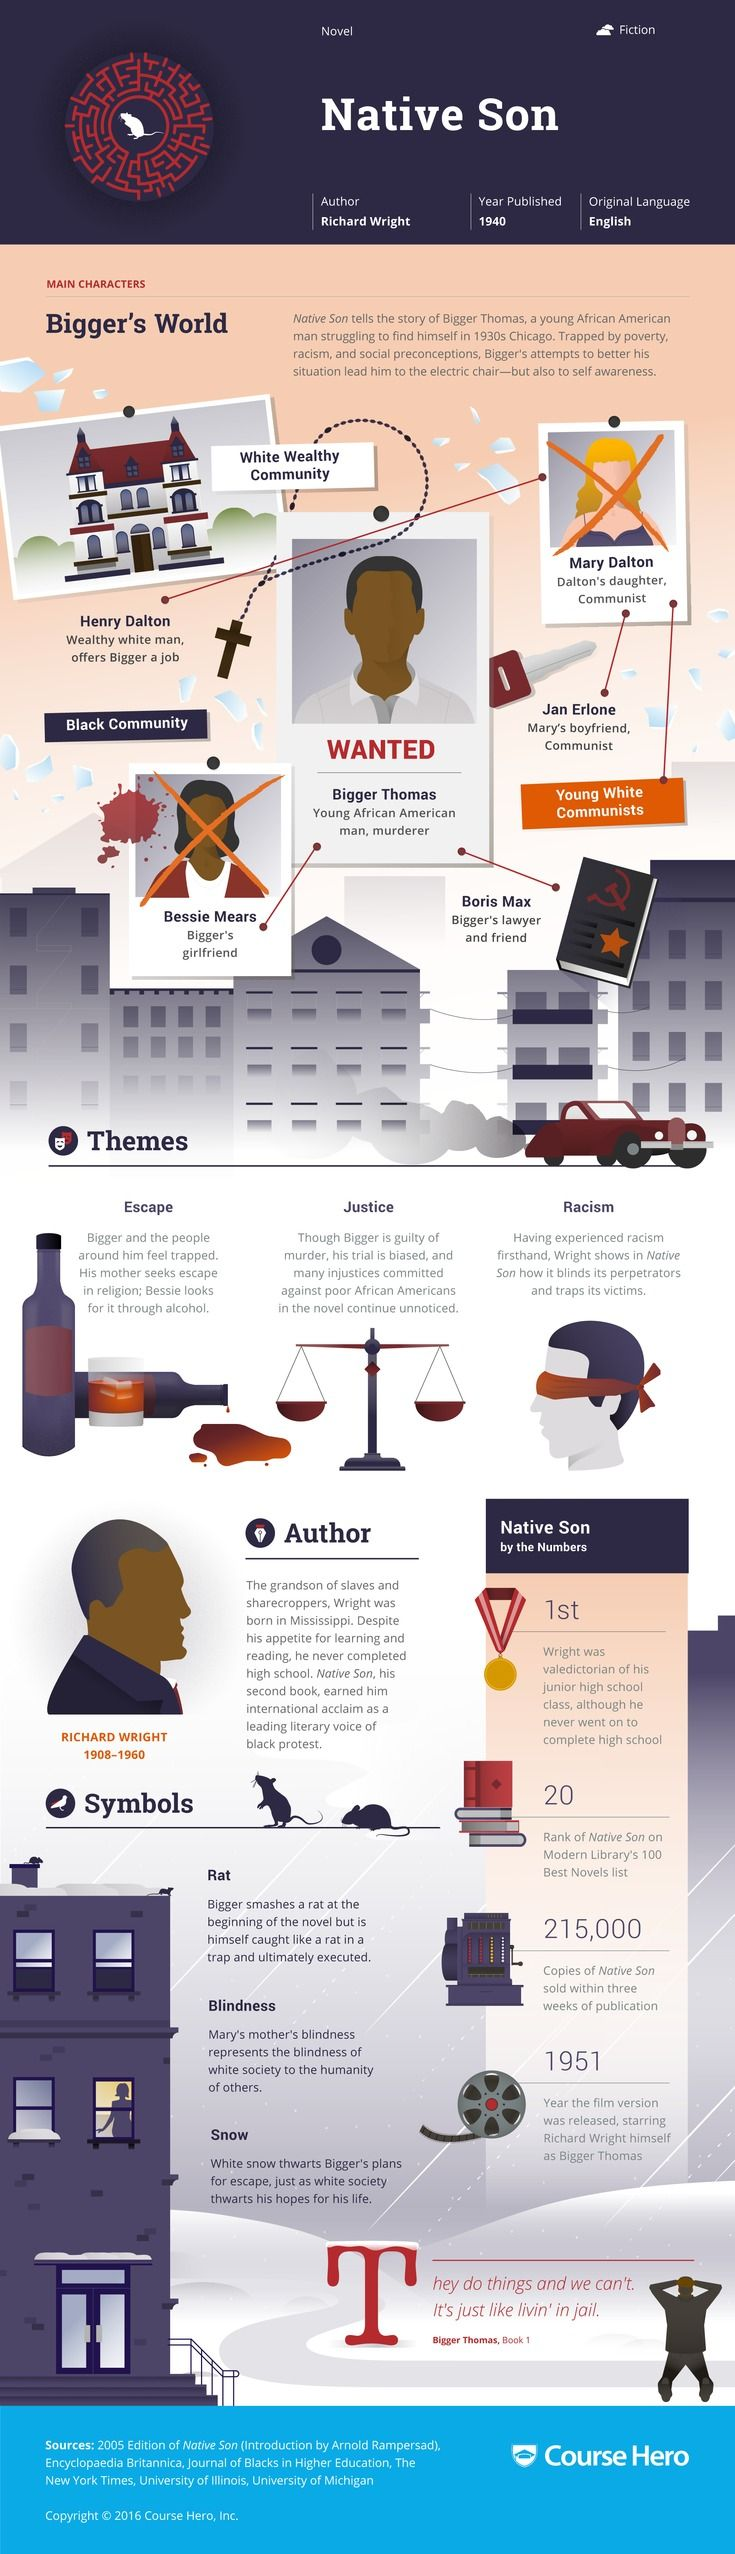 This 'Native Son' infographic from Course Hero is as awesome as it is helpful. Check it out!